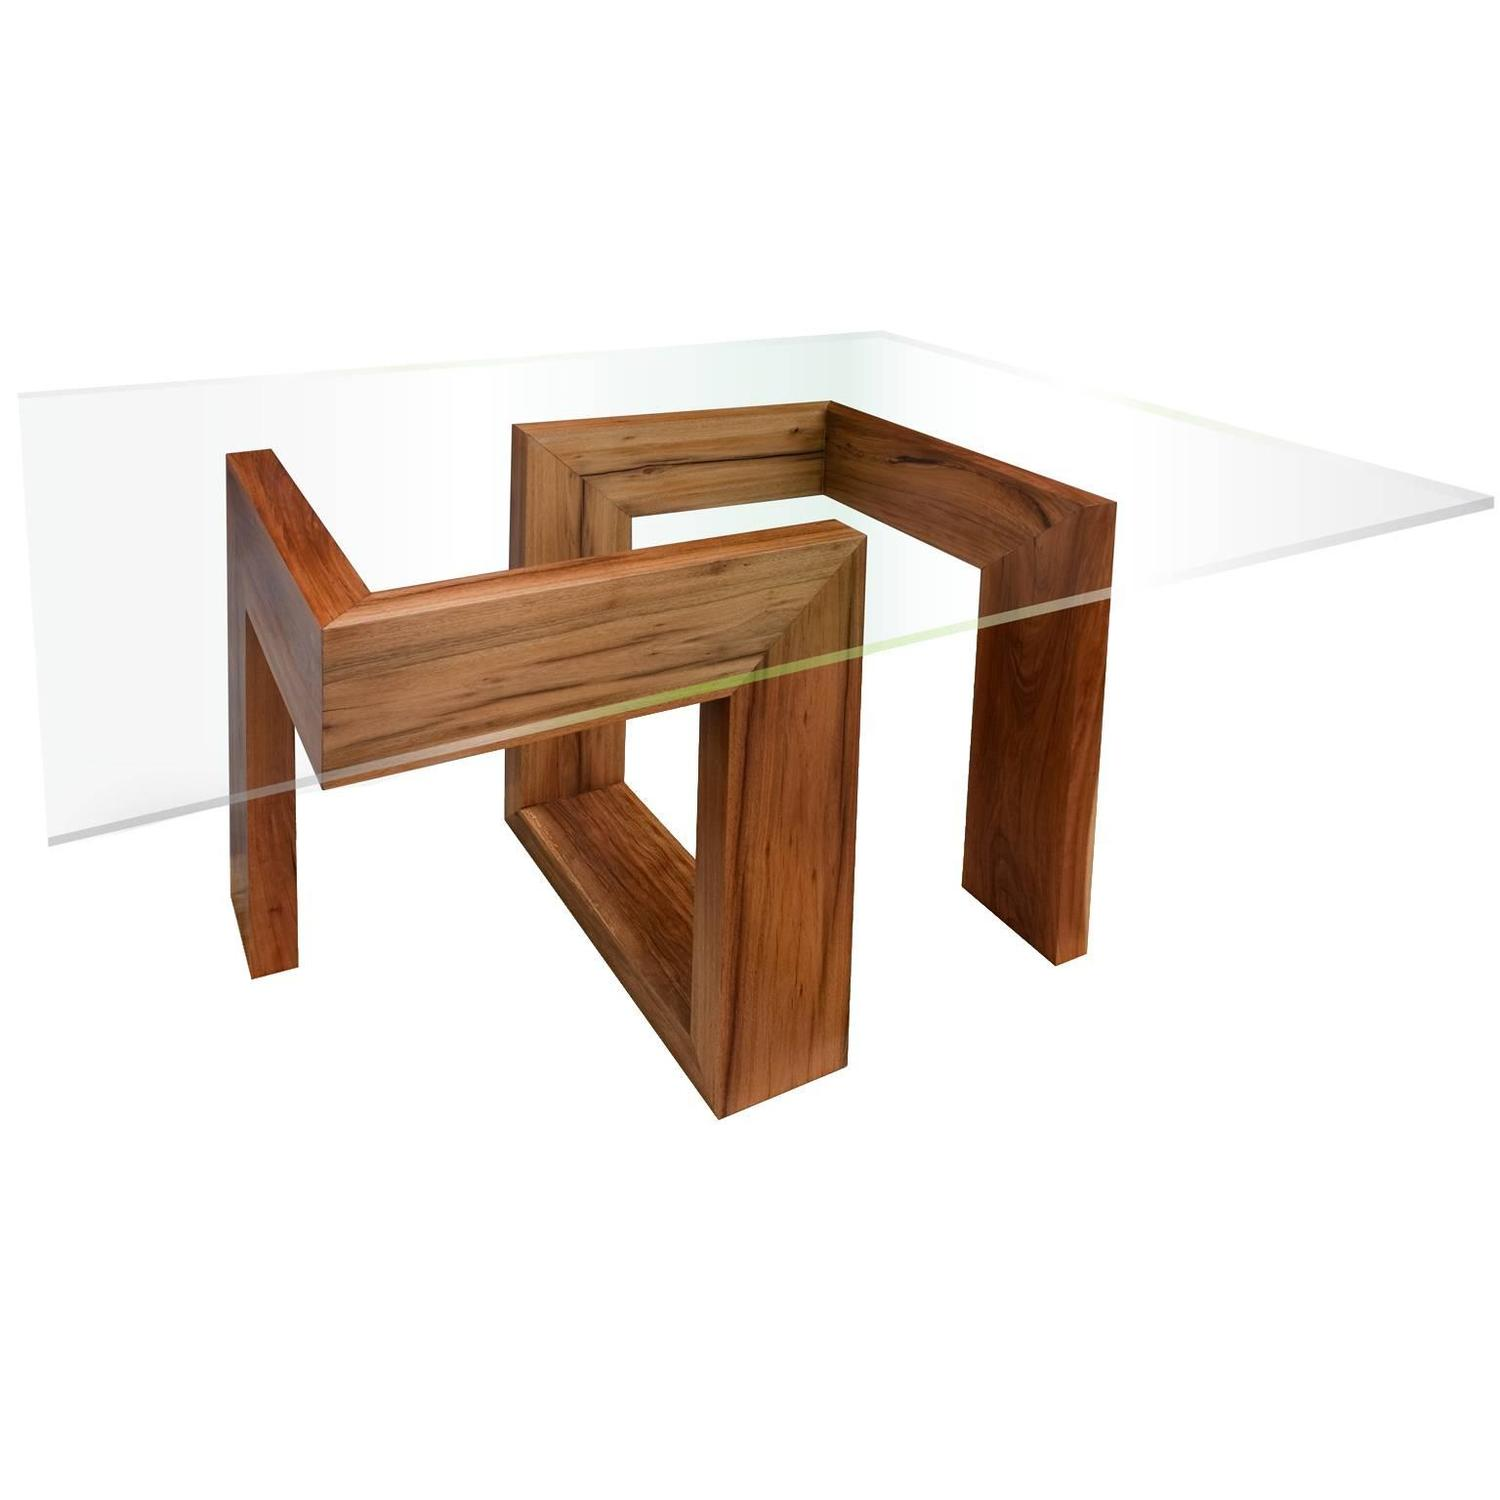 Modern 21st century solid timber table with glass top for for Table design view